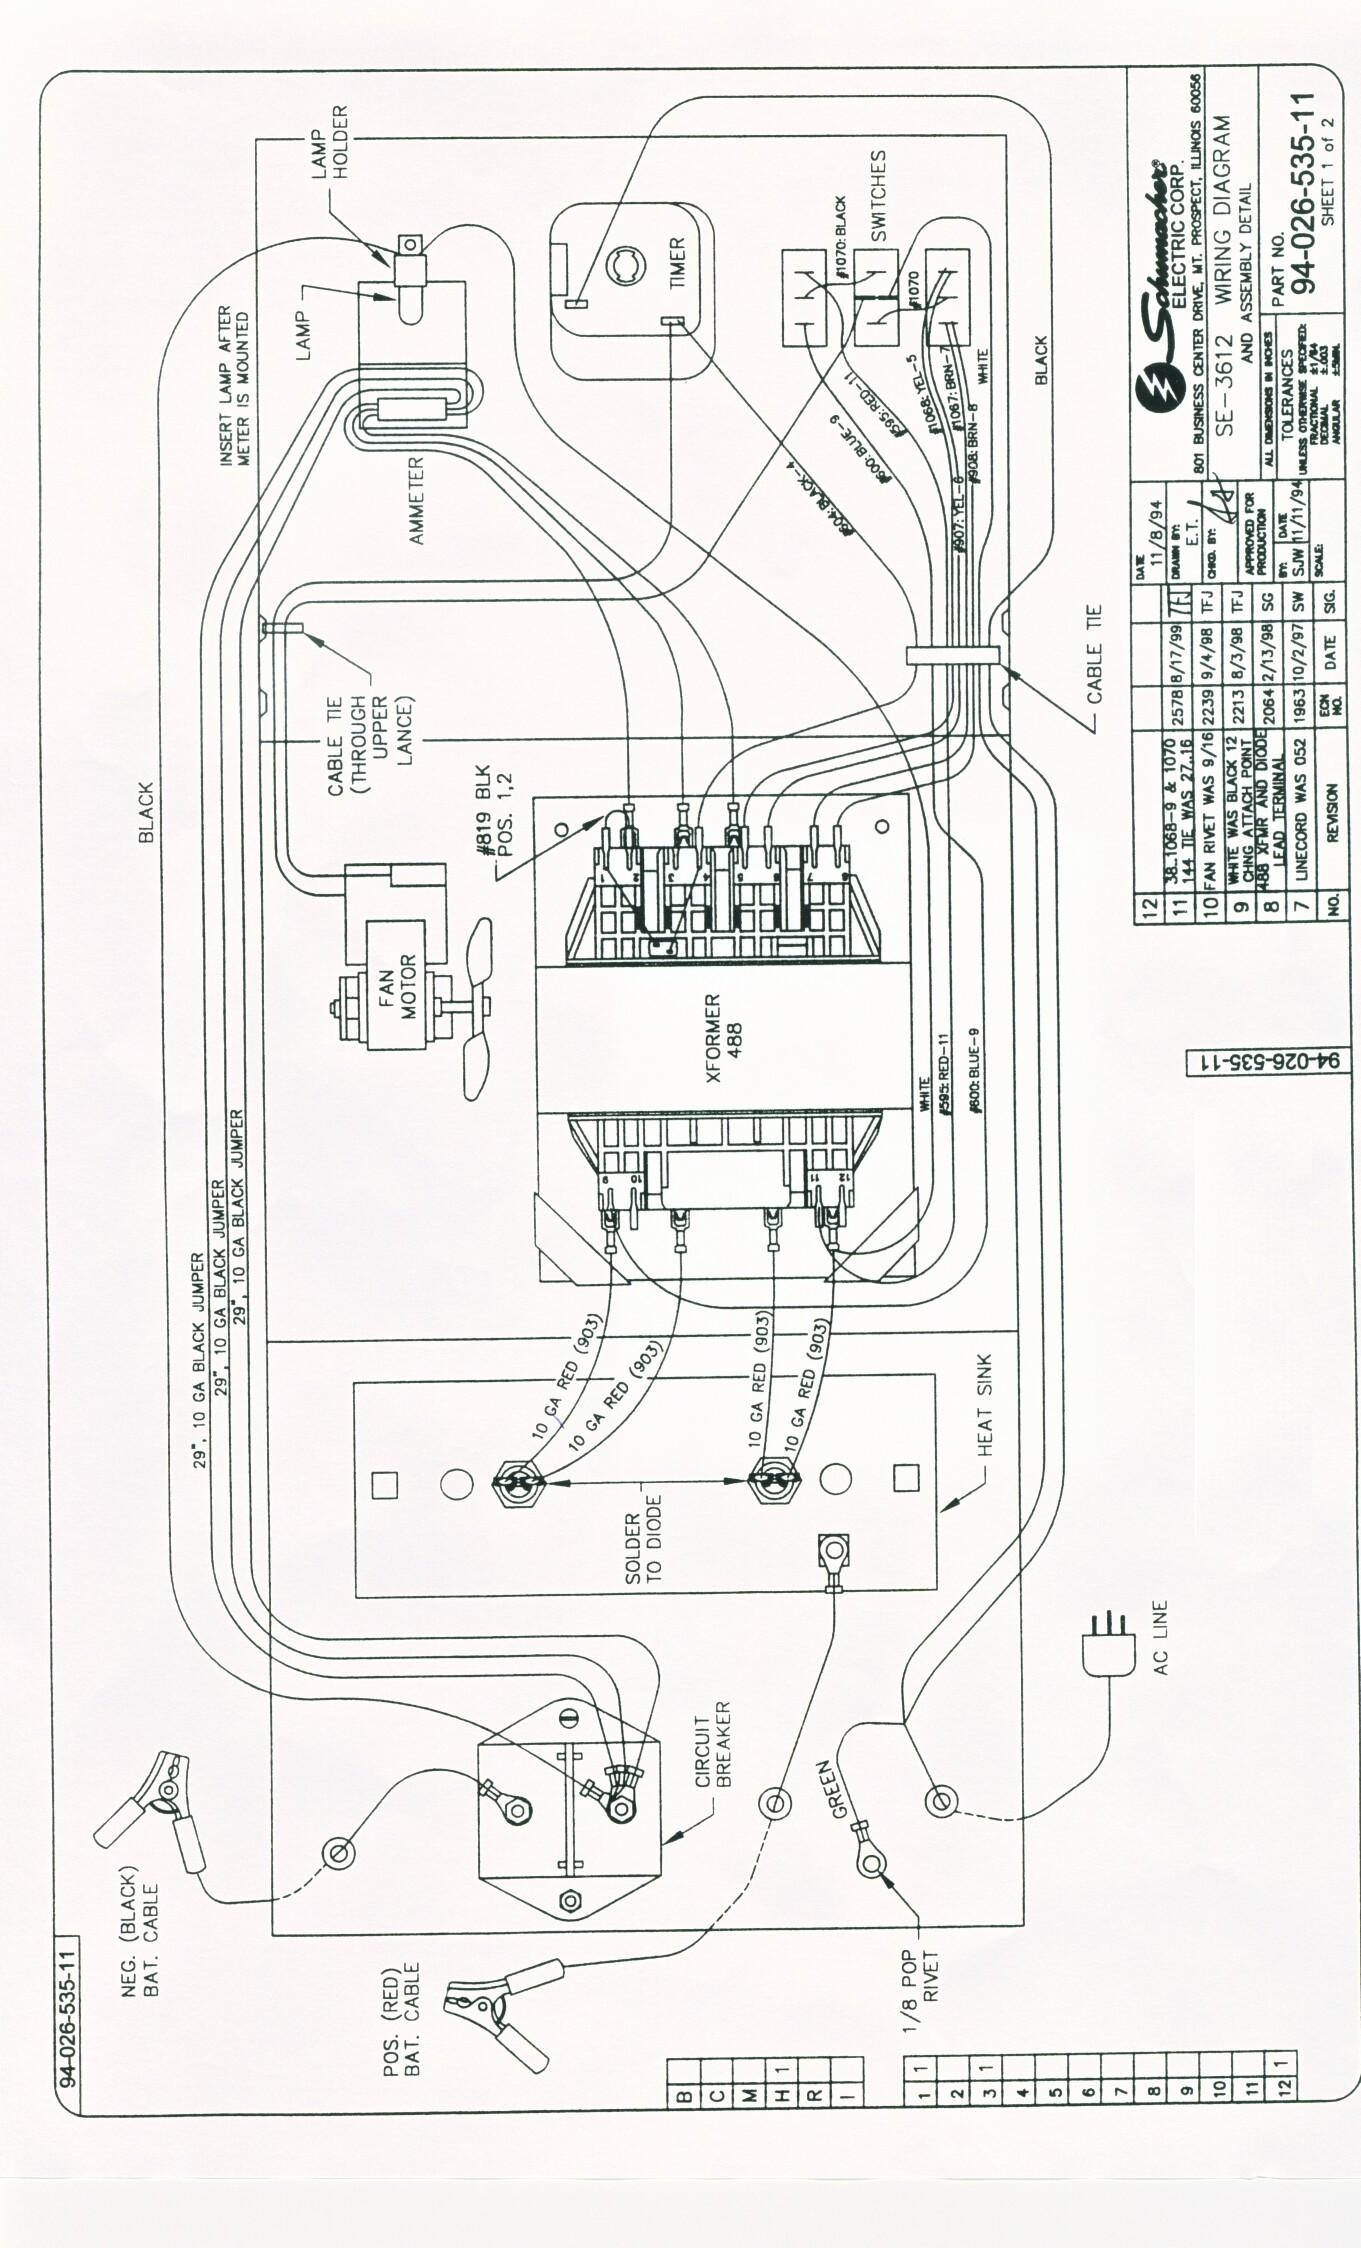 schumacher se 4022 wiring diagram Collection-Schumacher Se 4022 Wiring Diagram Schumacher Se 5212a Wiring Diagram New Pinterest the Worlds Catalog 8-a